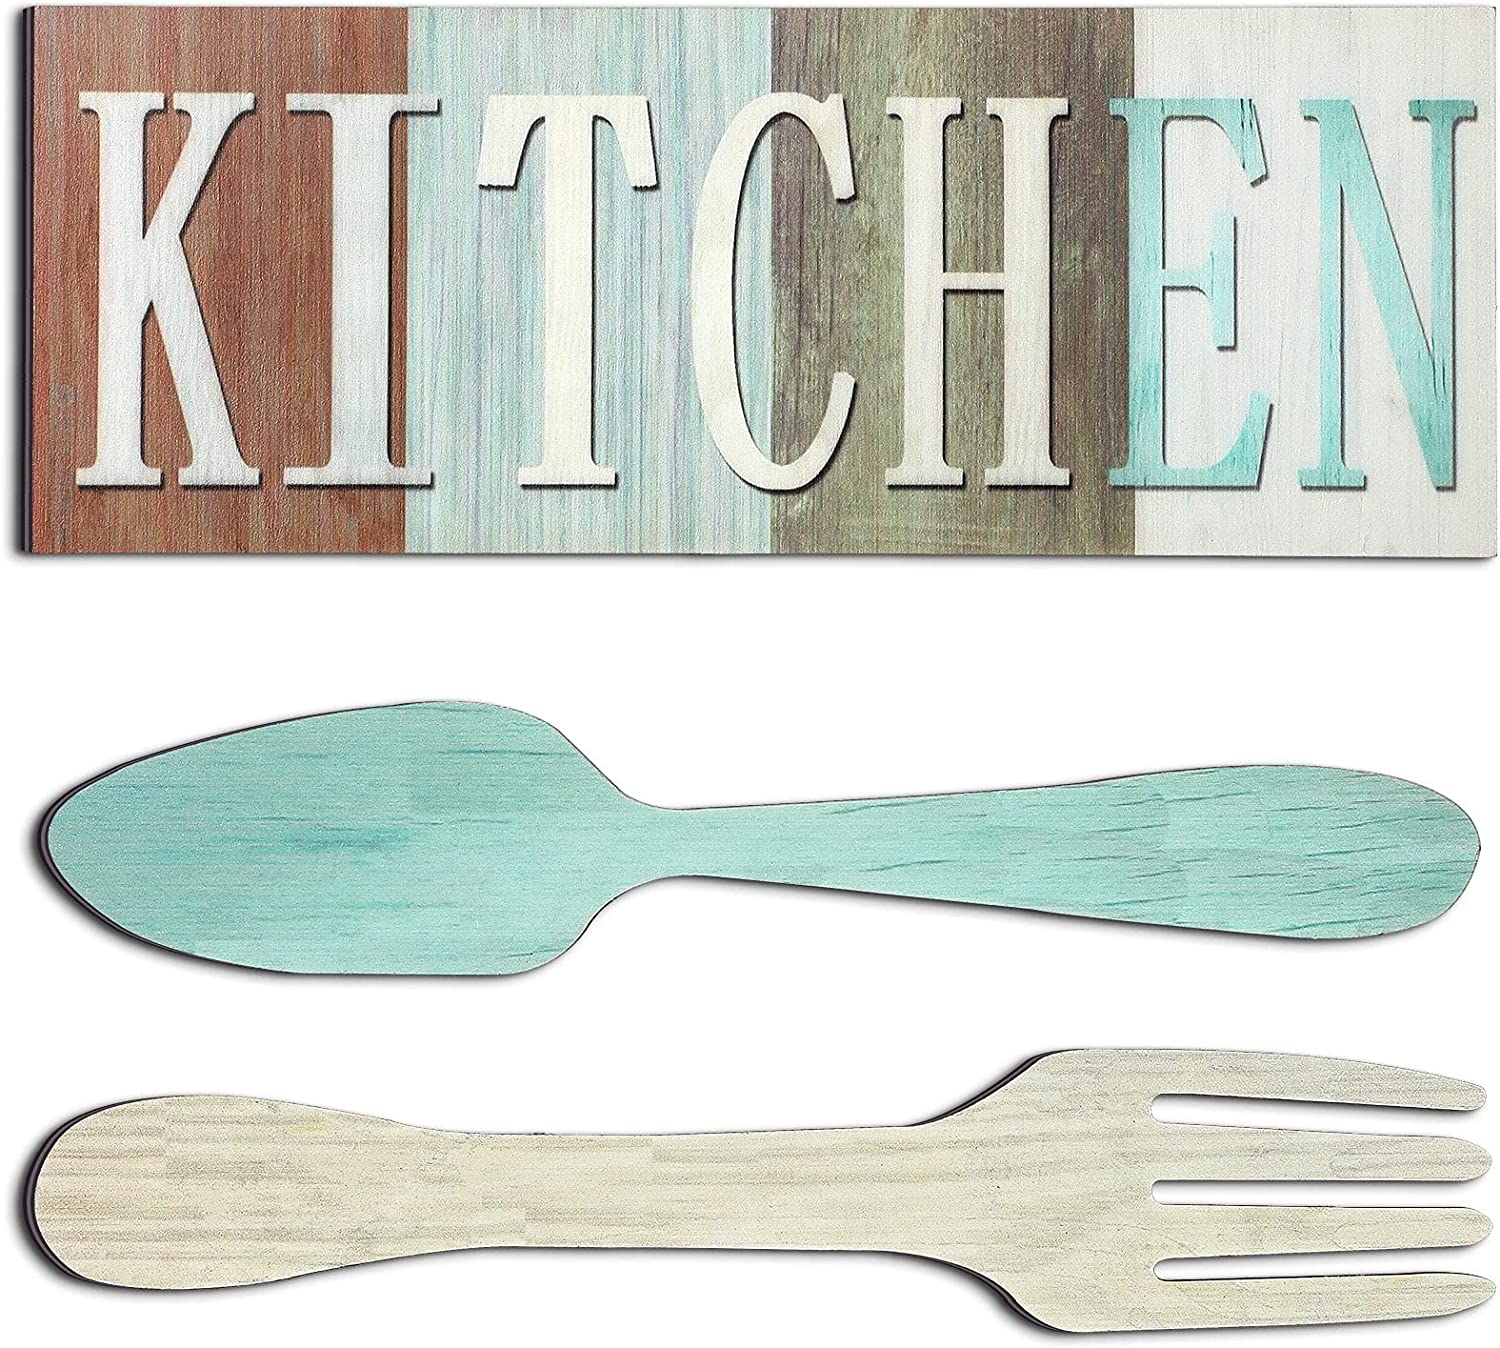 Kitchen Sign Set, Fork and Spoon Wall Decor Kitchen The Heart of The Home Sign Wood Rustic Kitchen Decoration Farmhouse Kitchen Wall Decor for Home Dining Room Housewarming Kitchen Decor (Mixed Color)